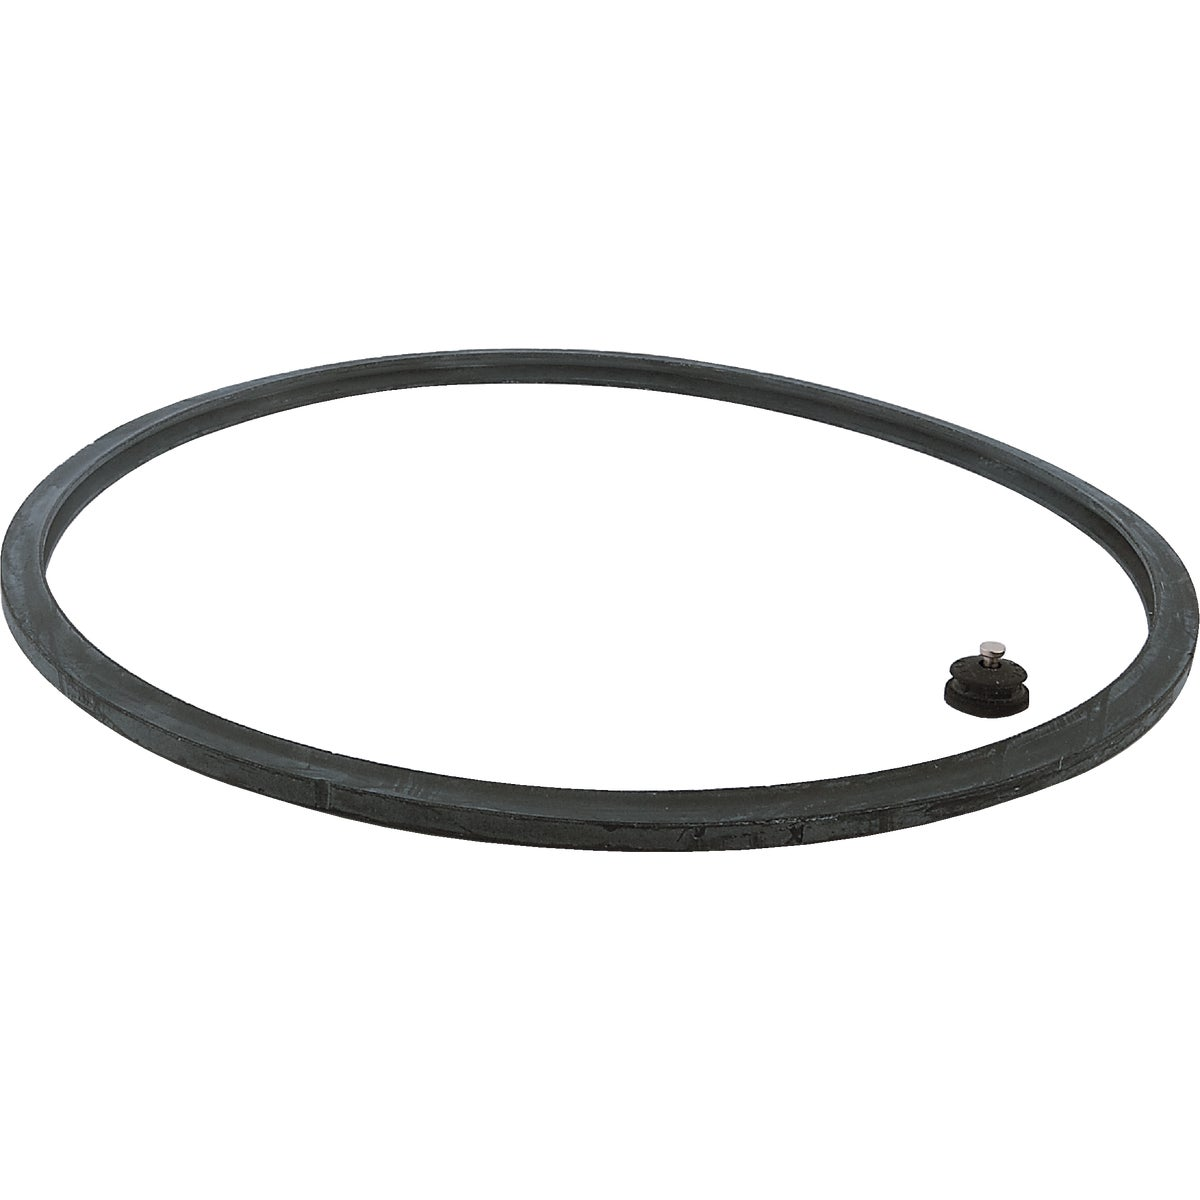 SEALING RING - 09919 by National Presto